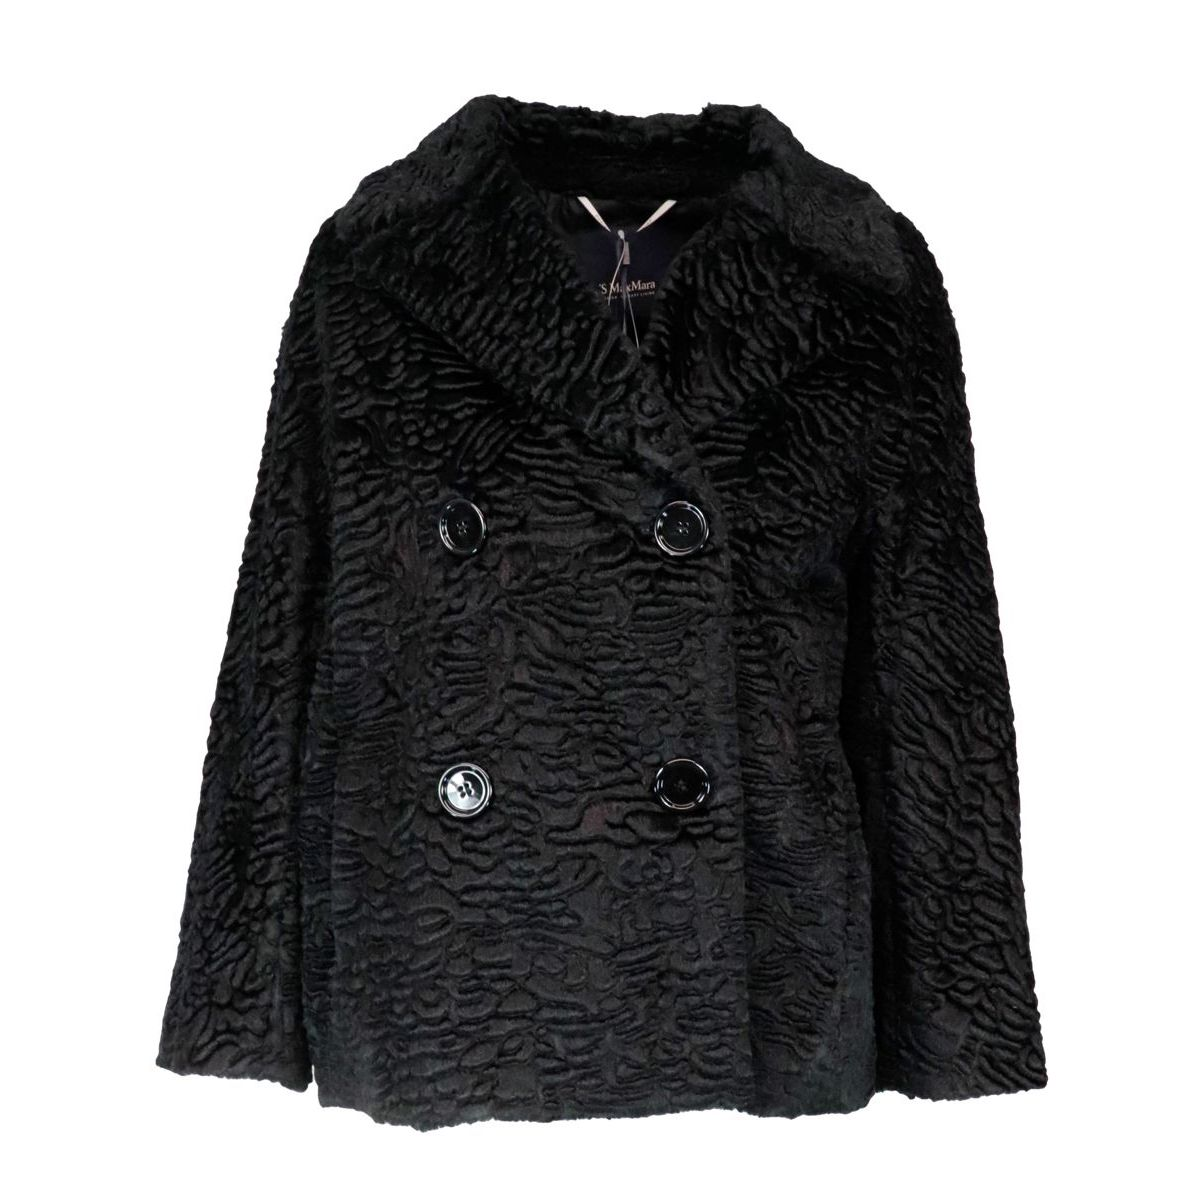 Calcut double-breasted jacket in astrakhan effect faux fur Black S MAX MARA